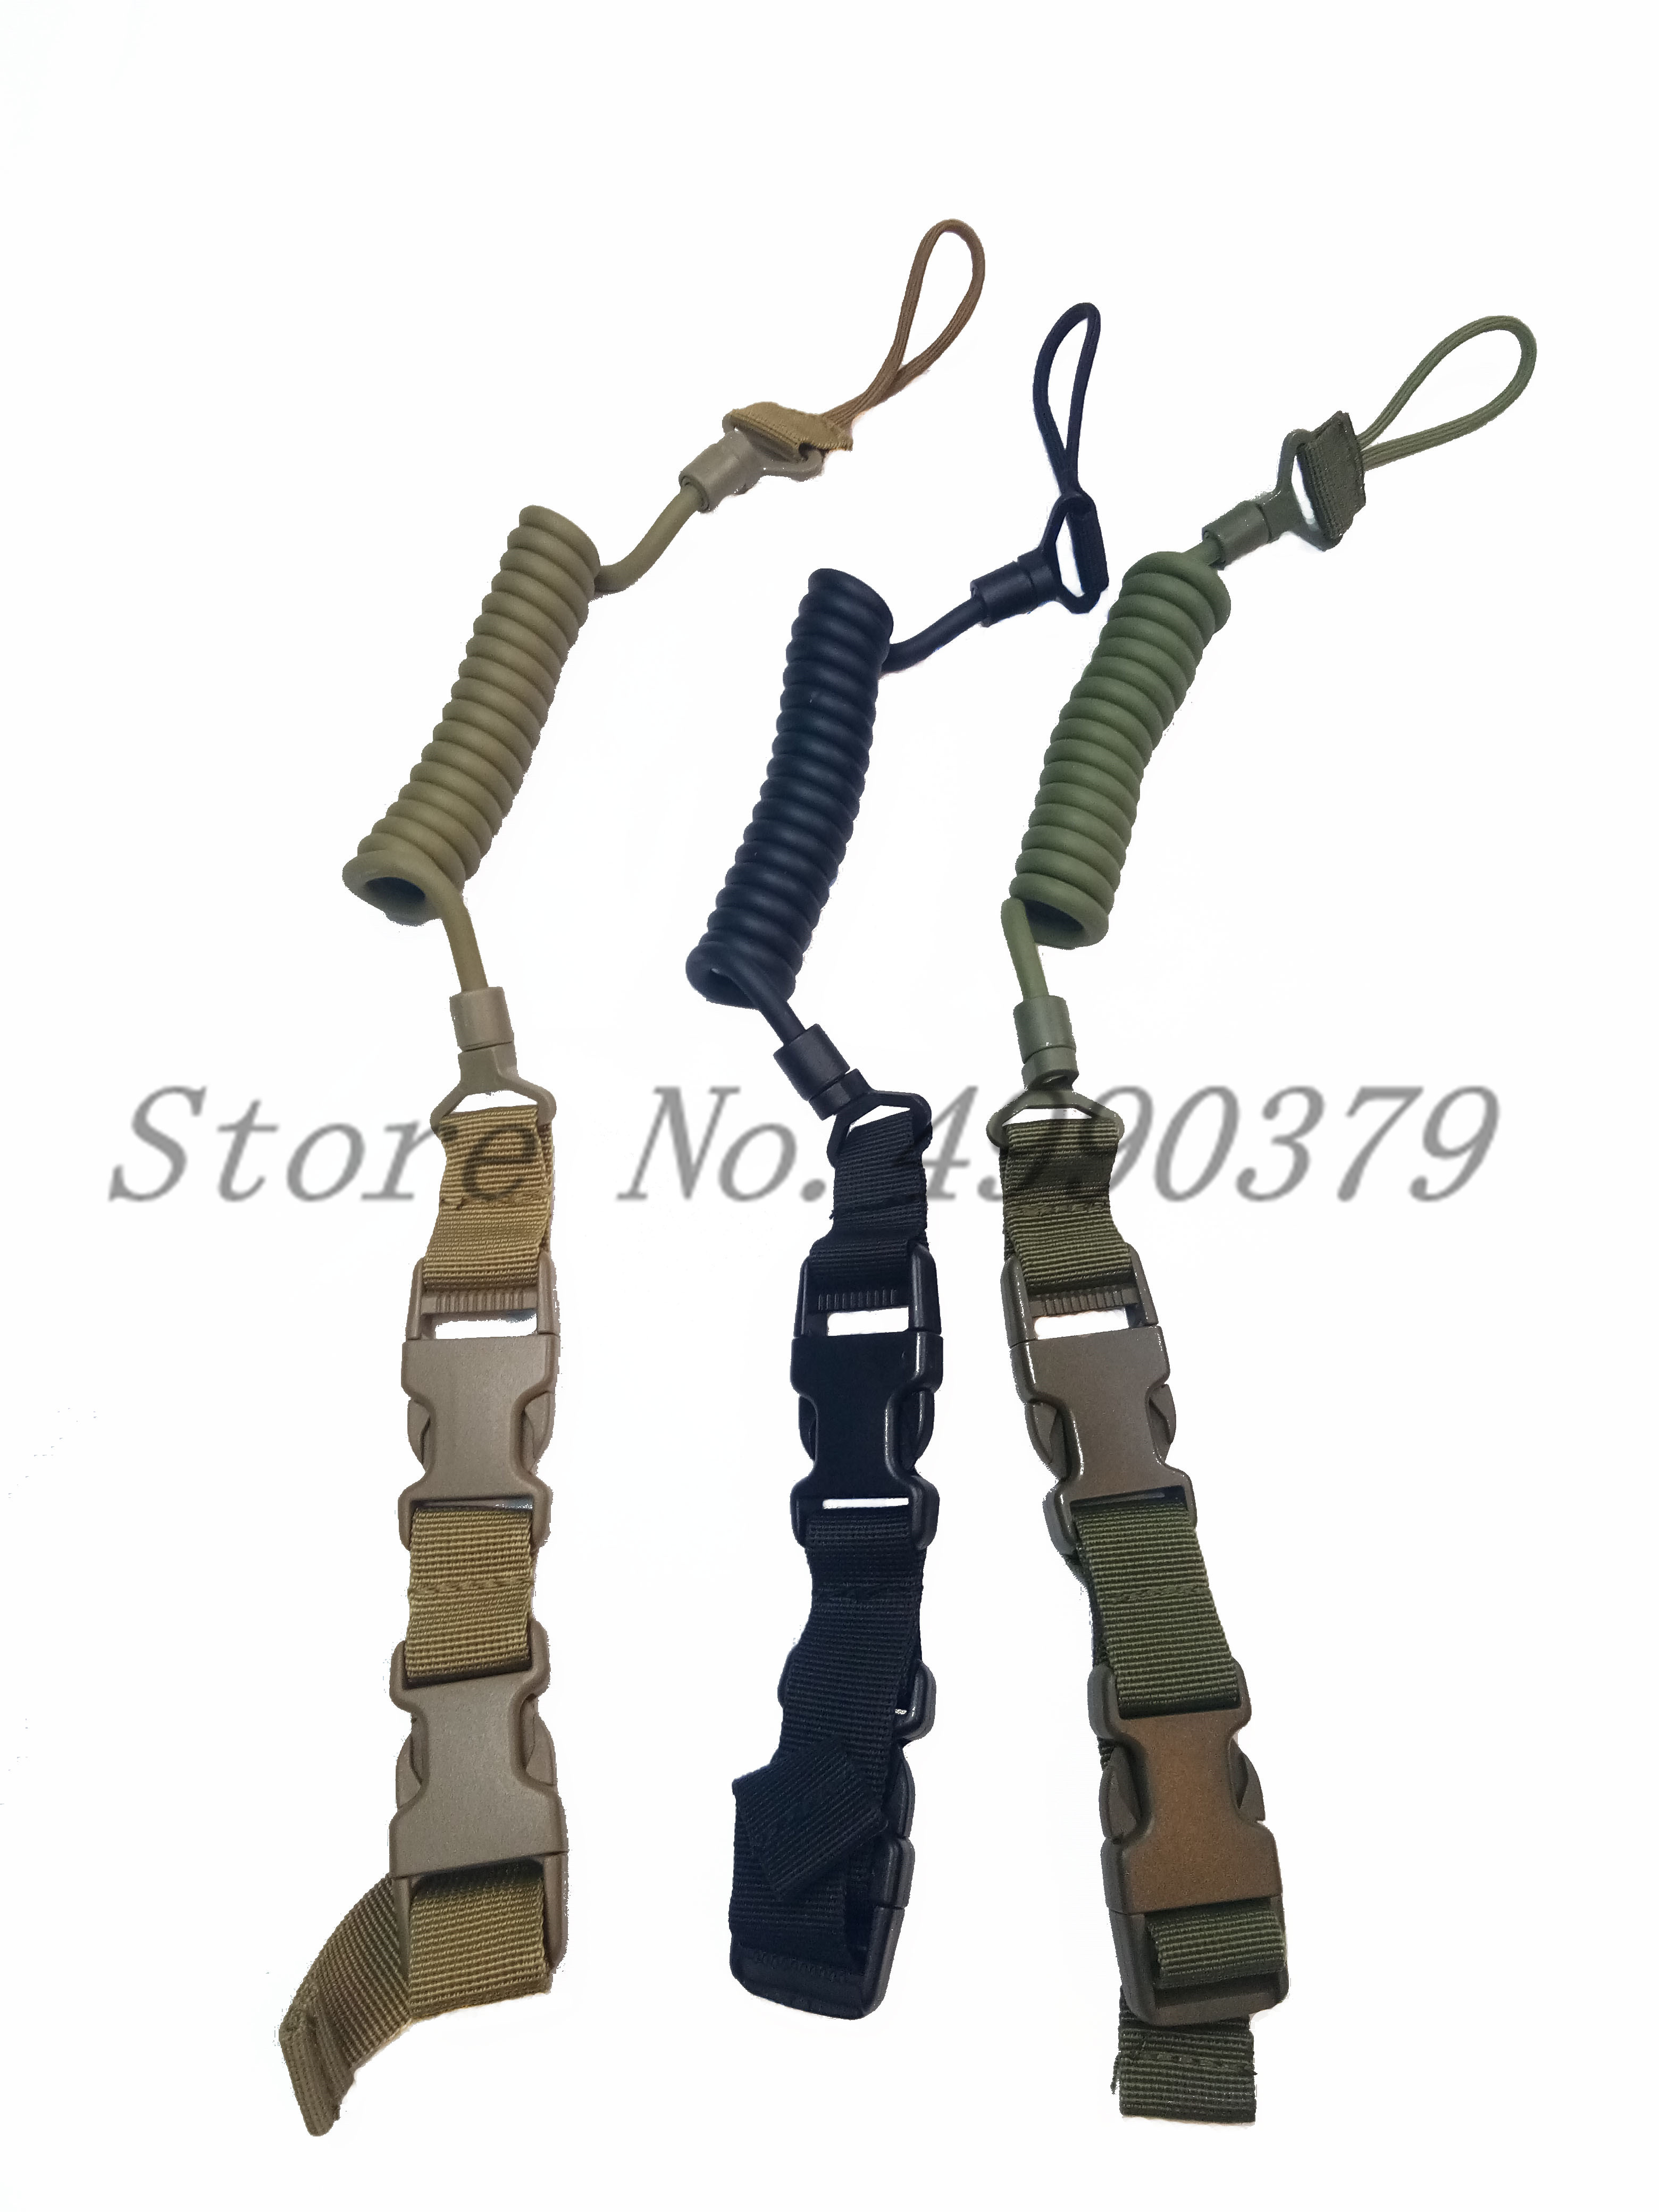 Image 2 - Tactical Two Point Rifle Sling Adjustable Bungee Tactical Airsoft Gun Strap System Paintball Gun Sling for Airsoft Hunting New-in Hunting Gun Accessories from Sports & Entertainment